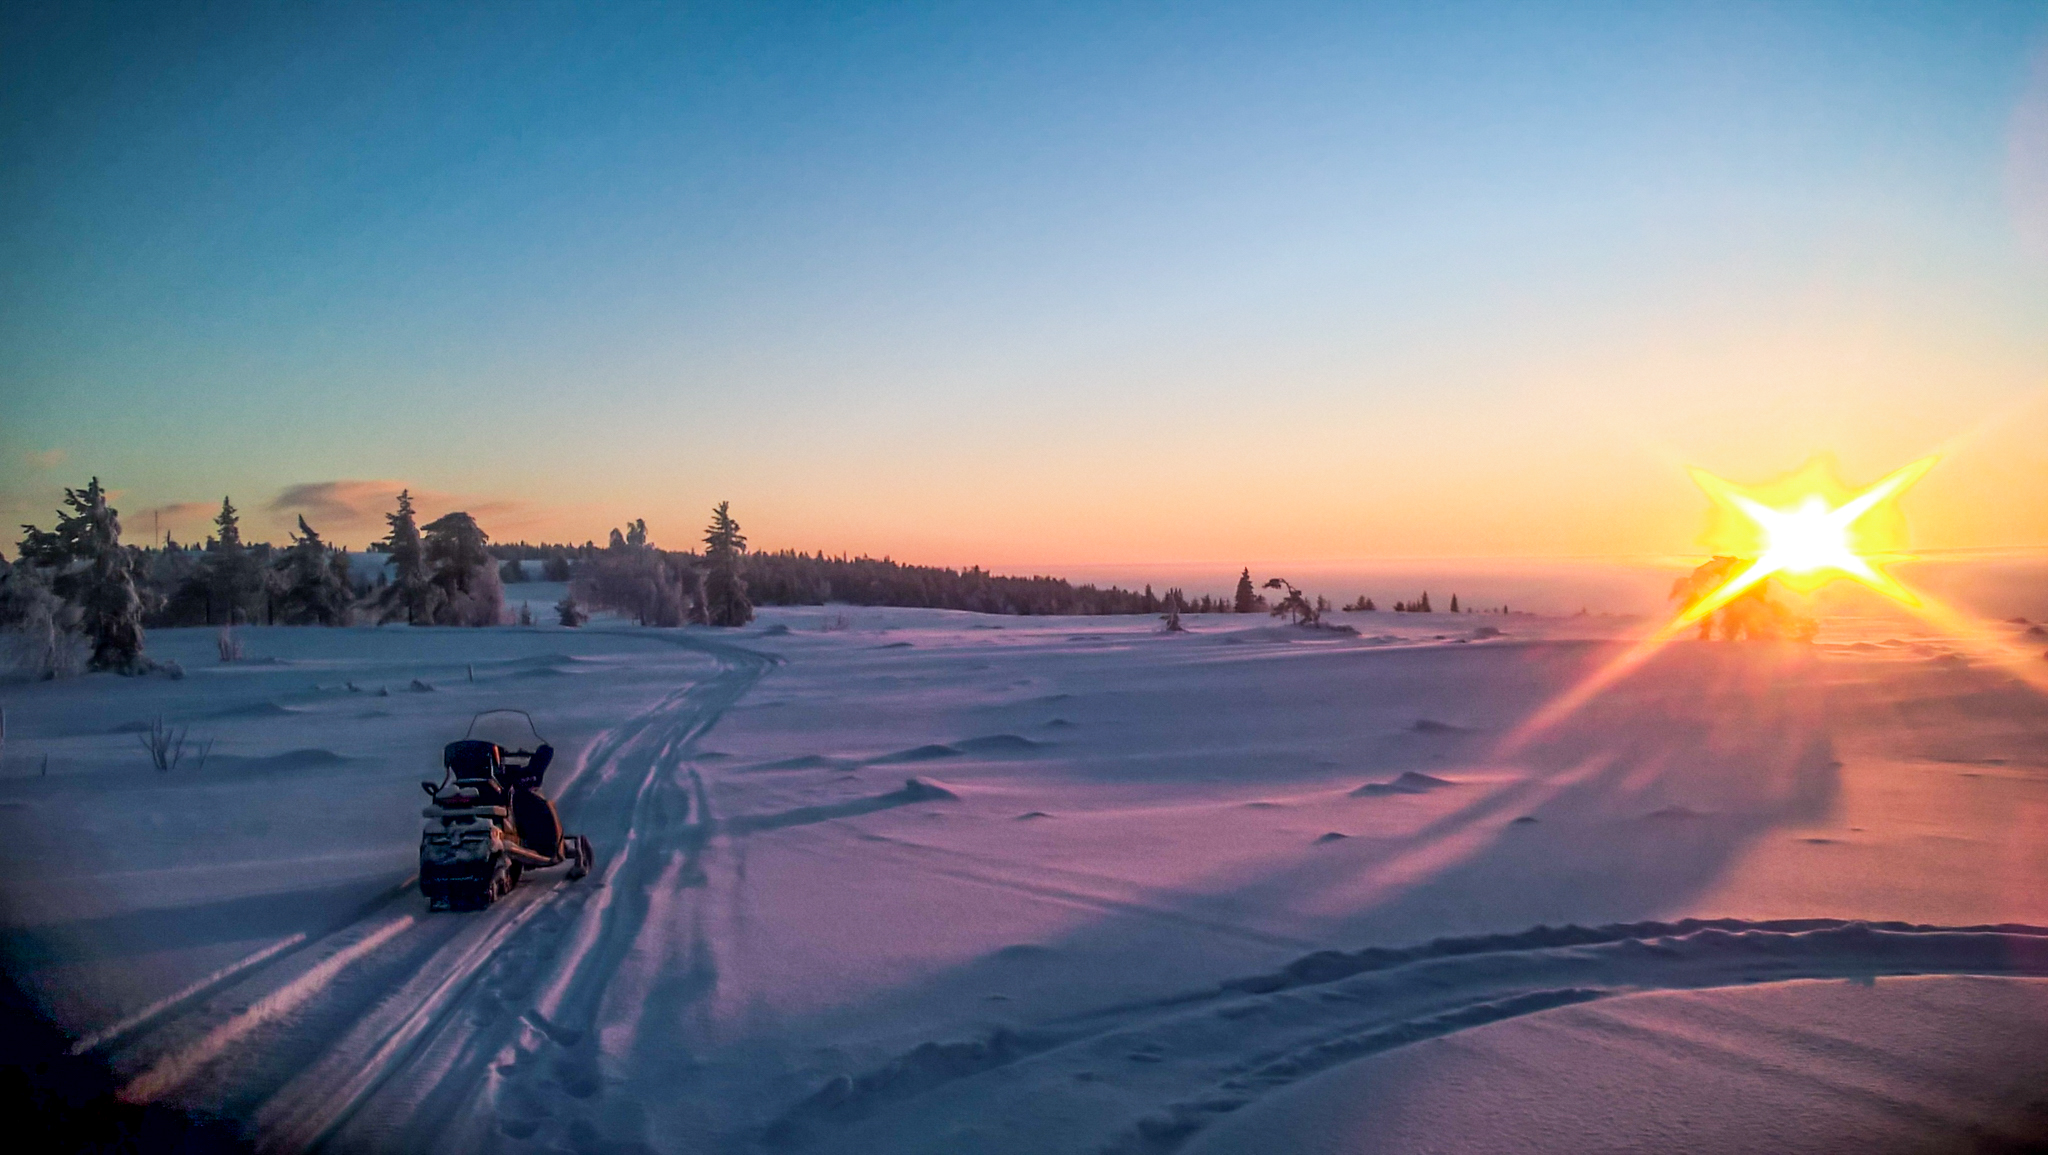 snowmobile in snowy landscape and sunset